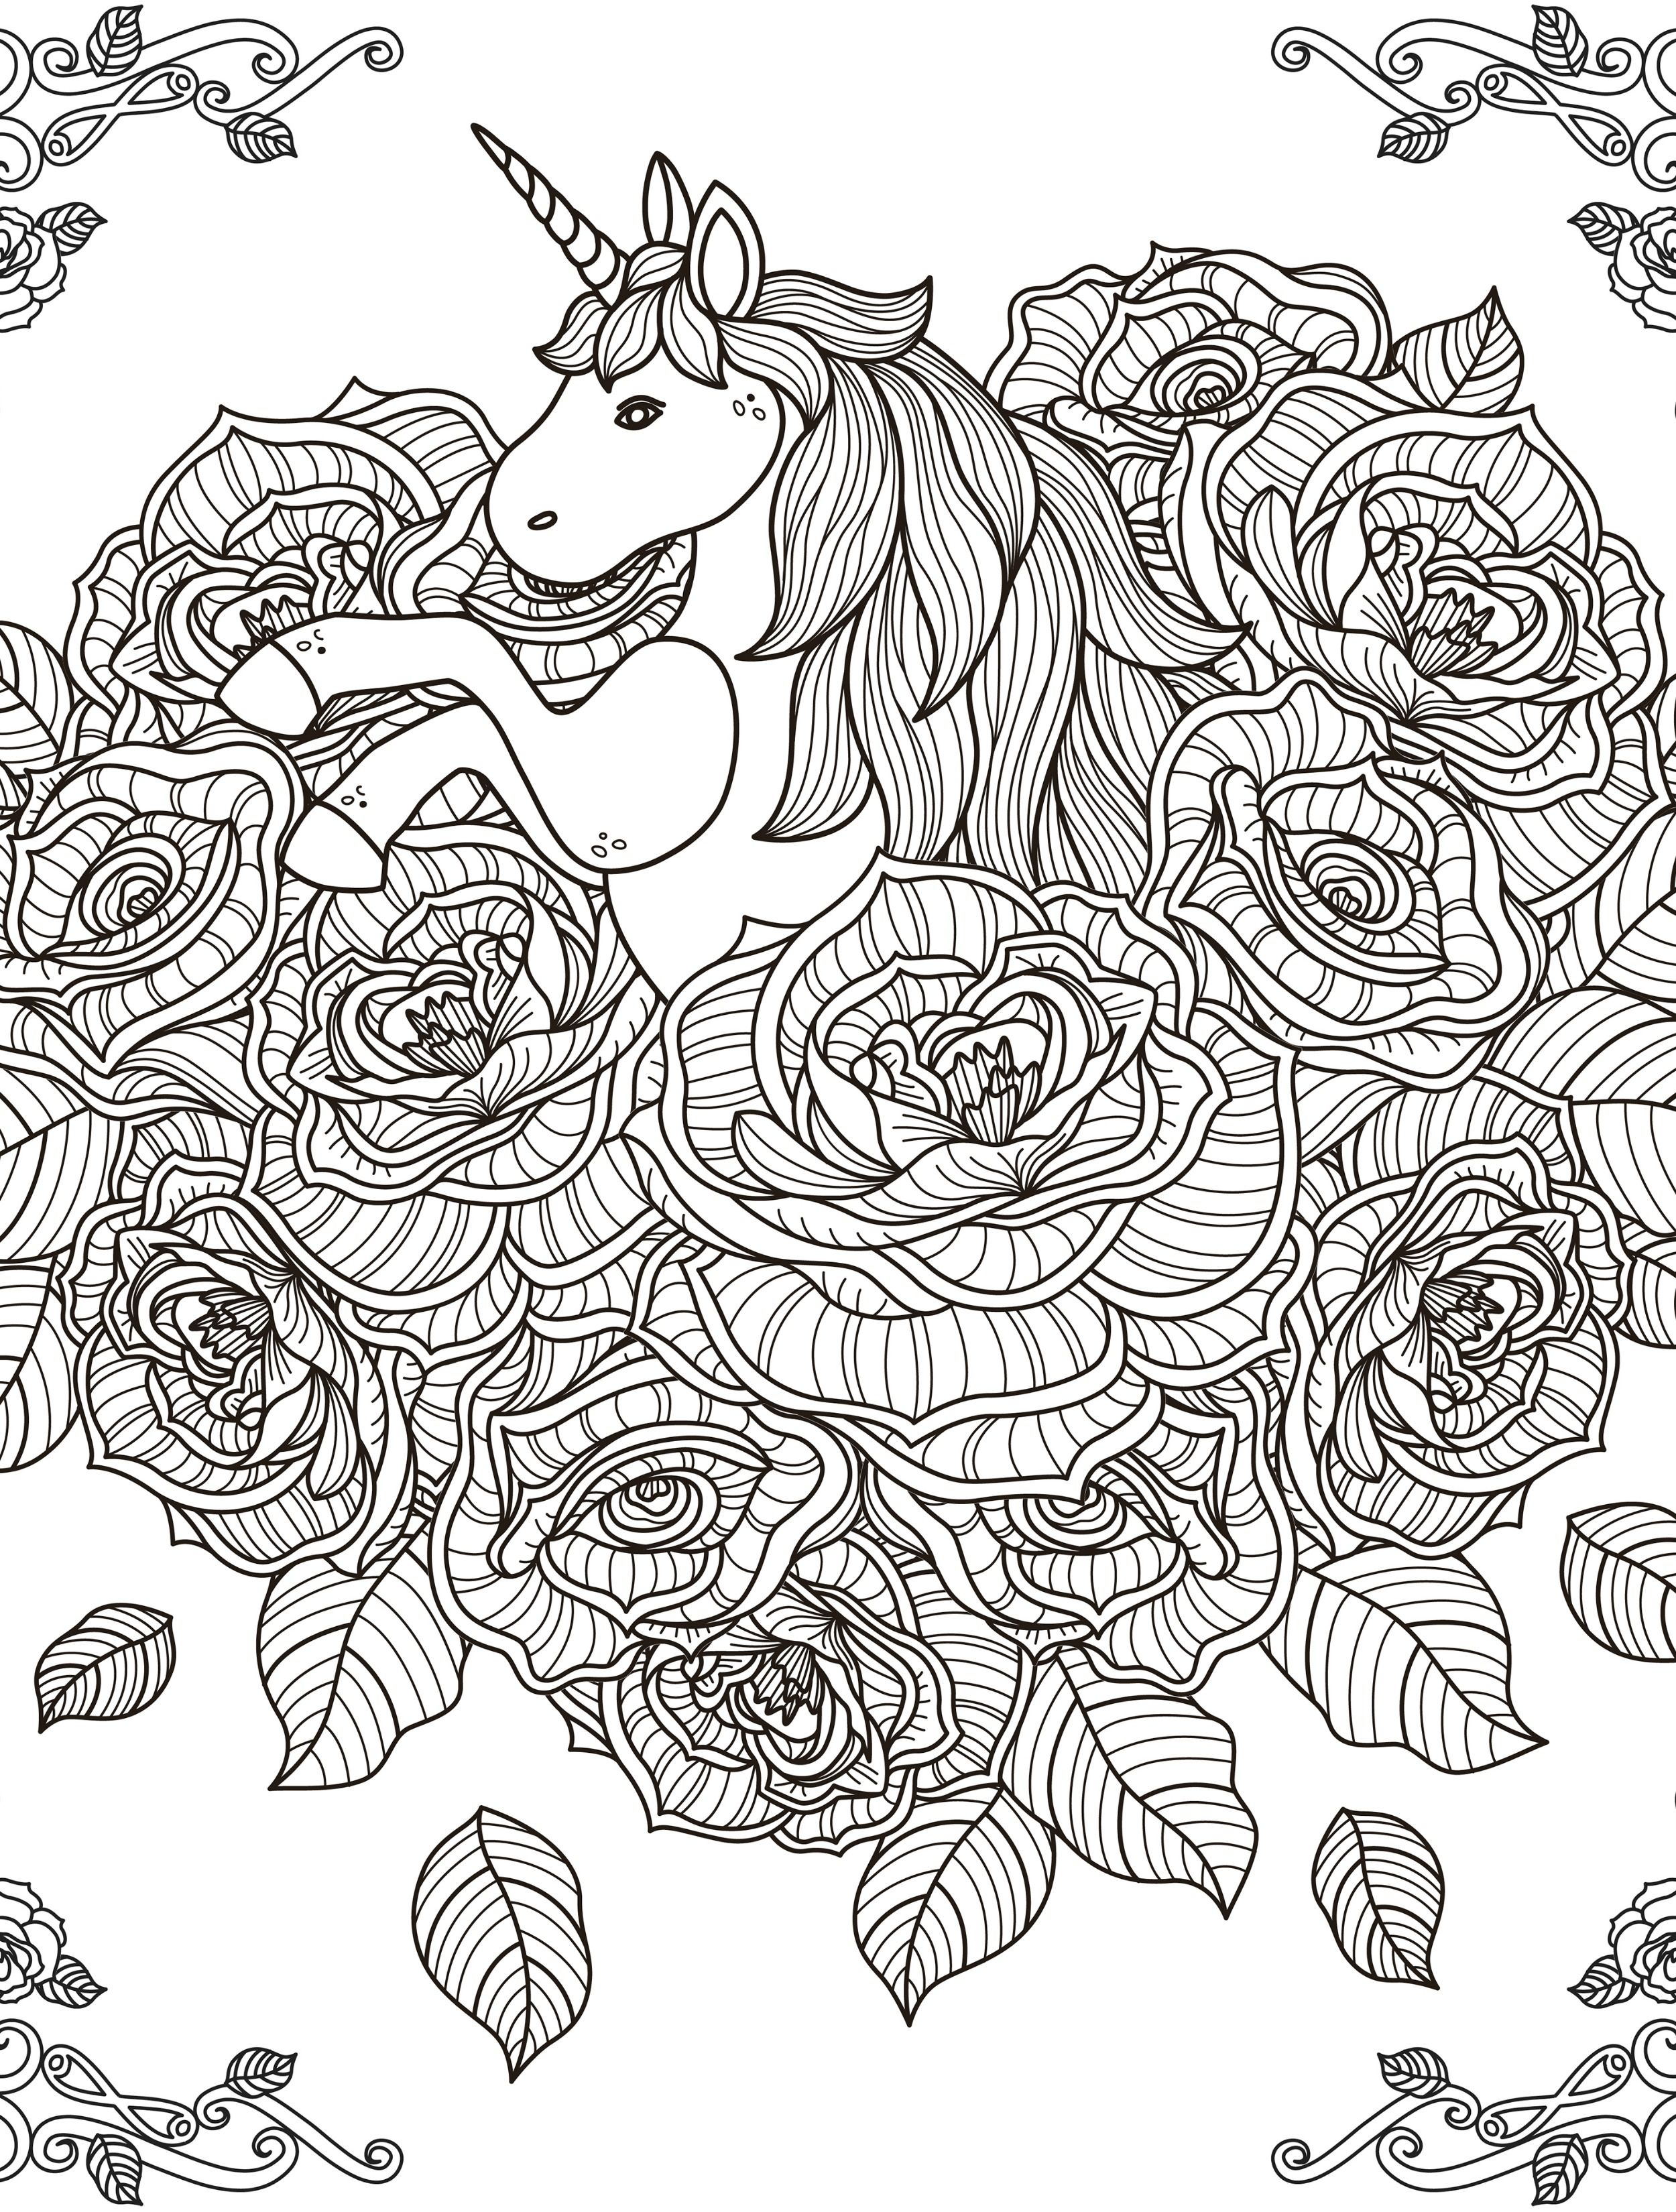 Unicorn Coloring Page For Adults Printable1 2,500×3,300 Pixels